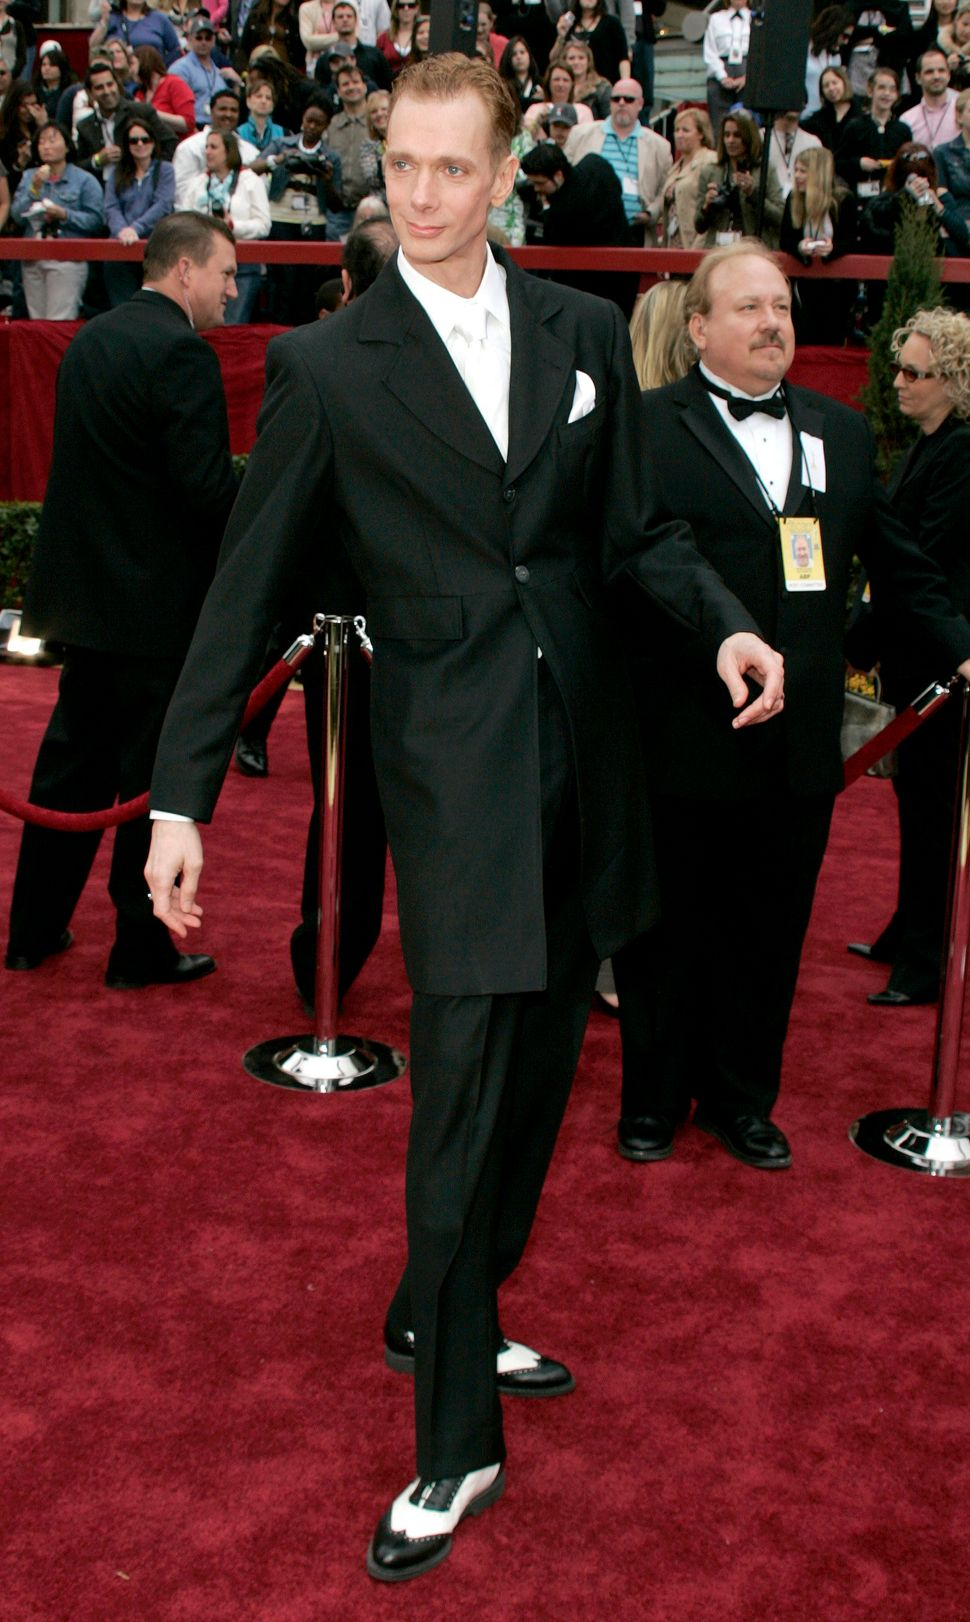 Doug Jones attends the Oscars on Feb. 25, 2007.